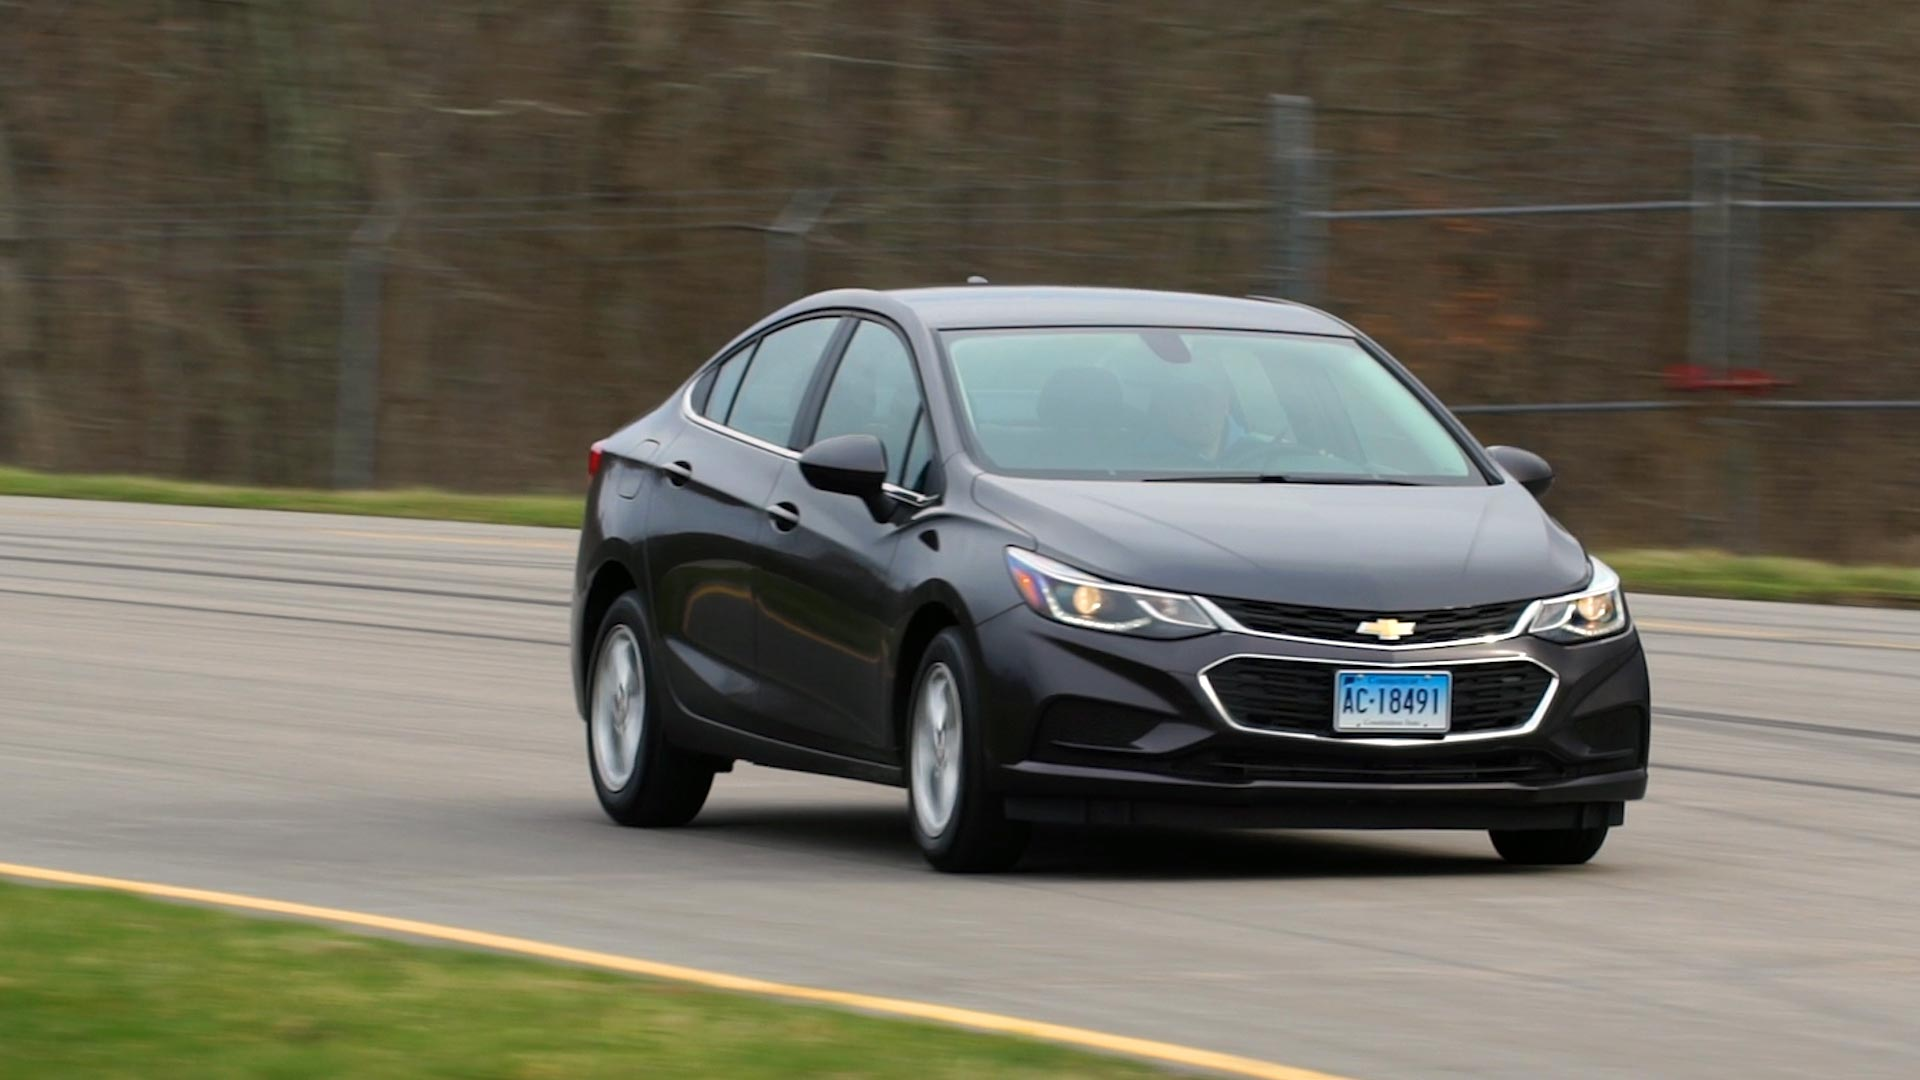 2018 Chevrolet Cruze Reviews, Ratings, Prices - Consumer Reports